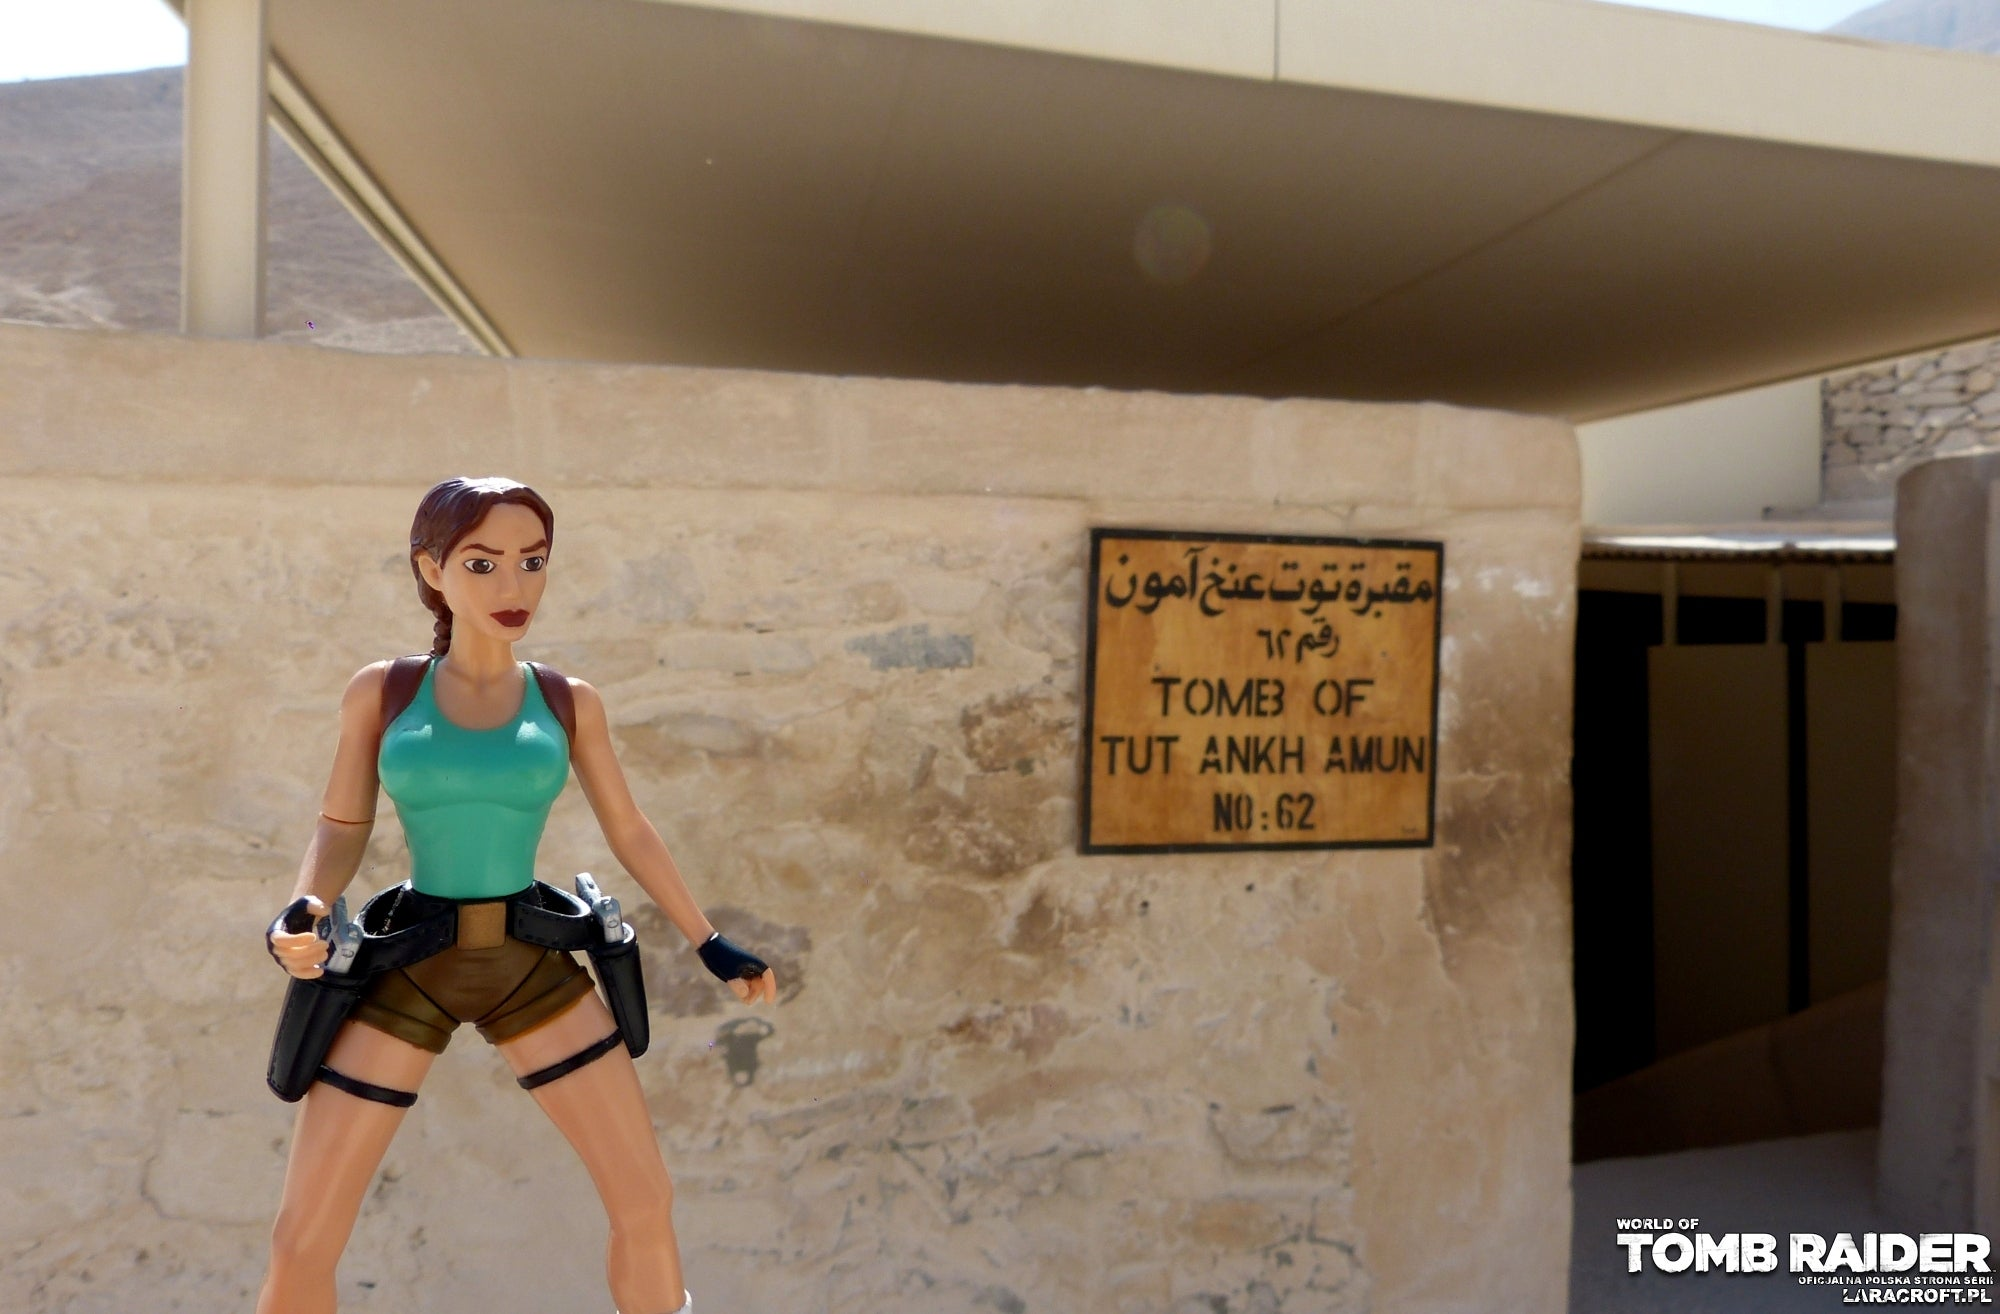 A photograph of a Lara Croft figure in front of a tomb sign in Egypt